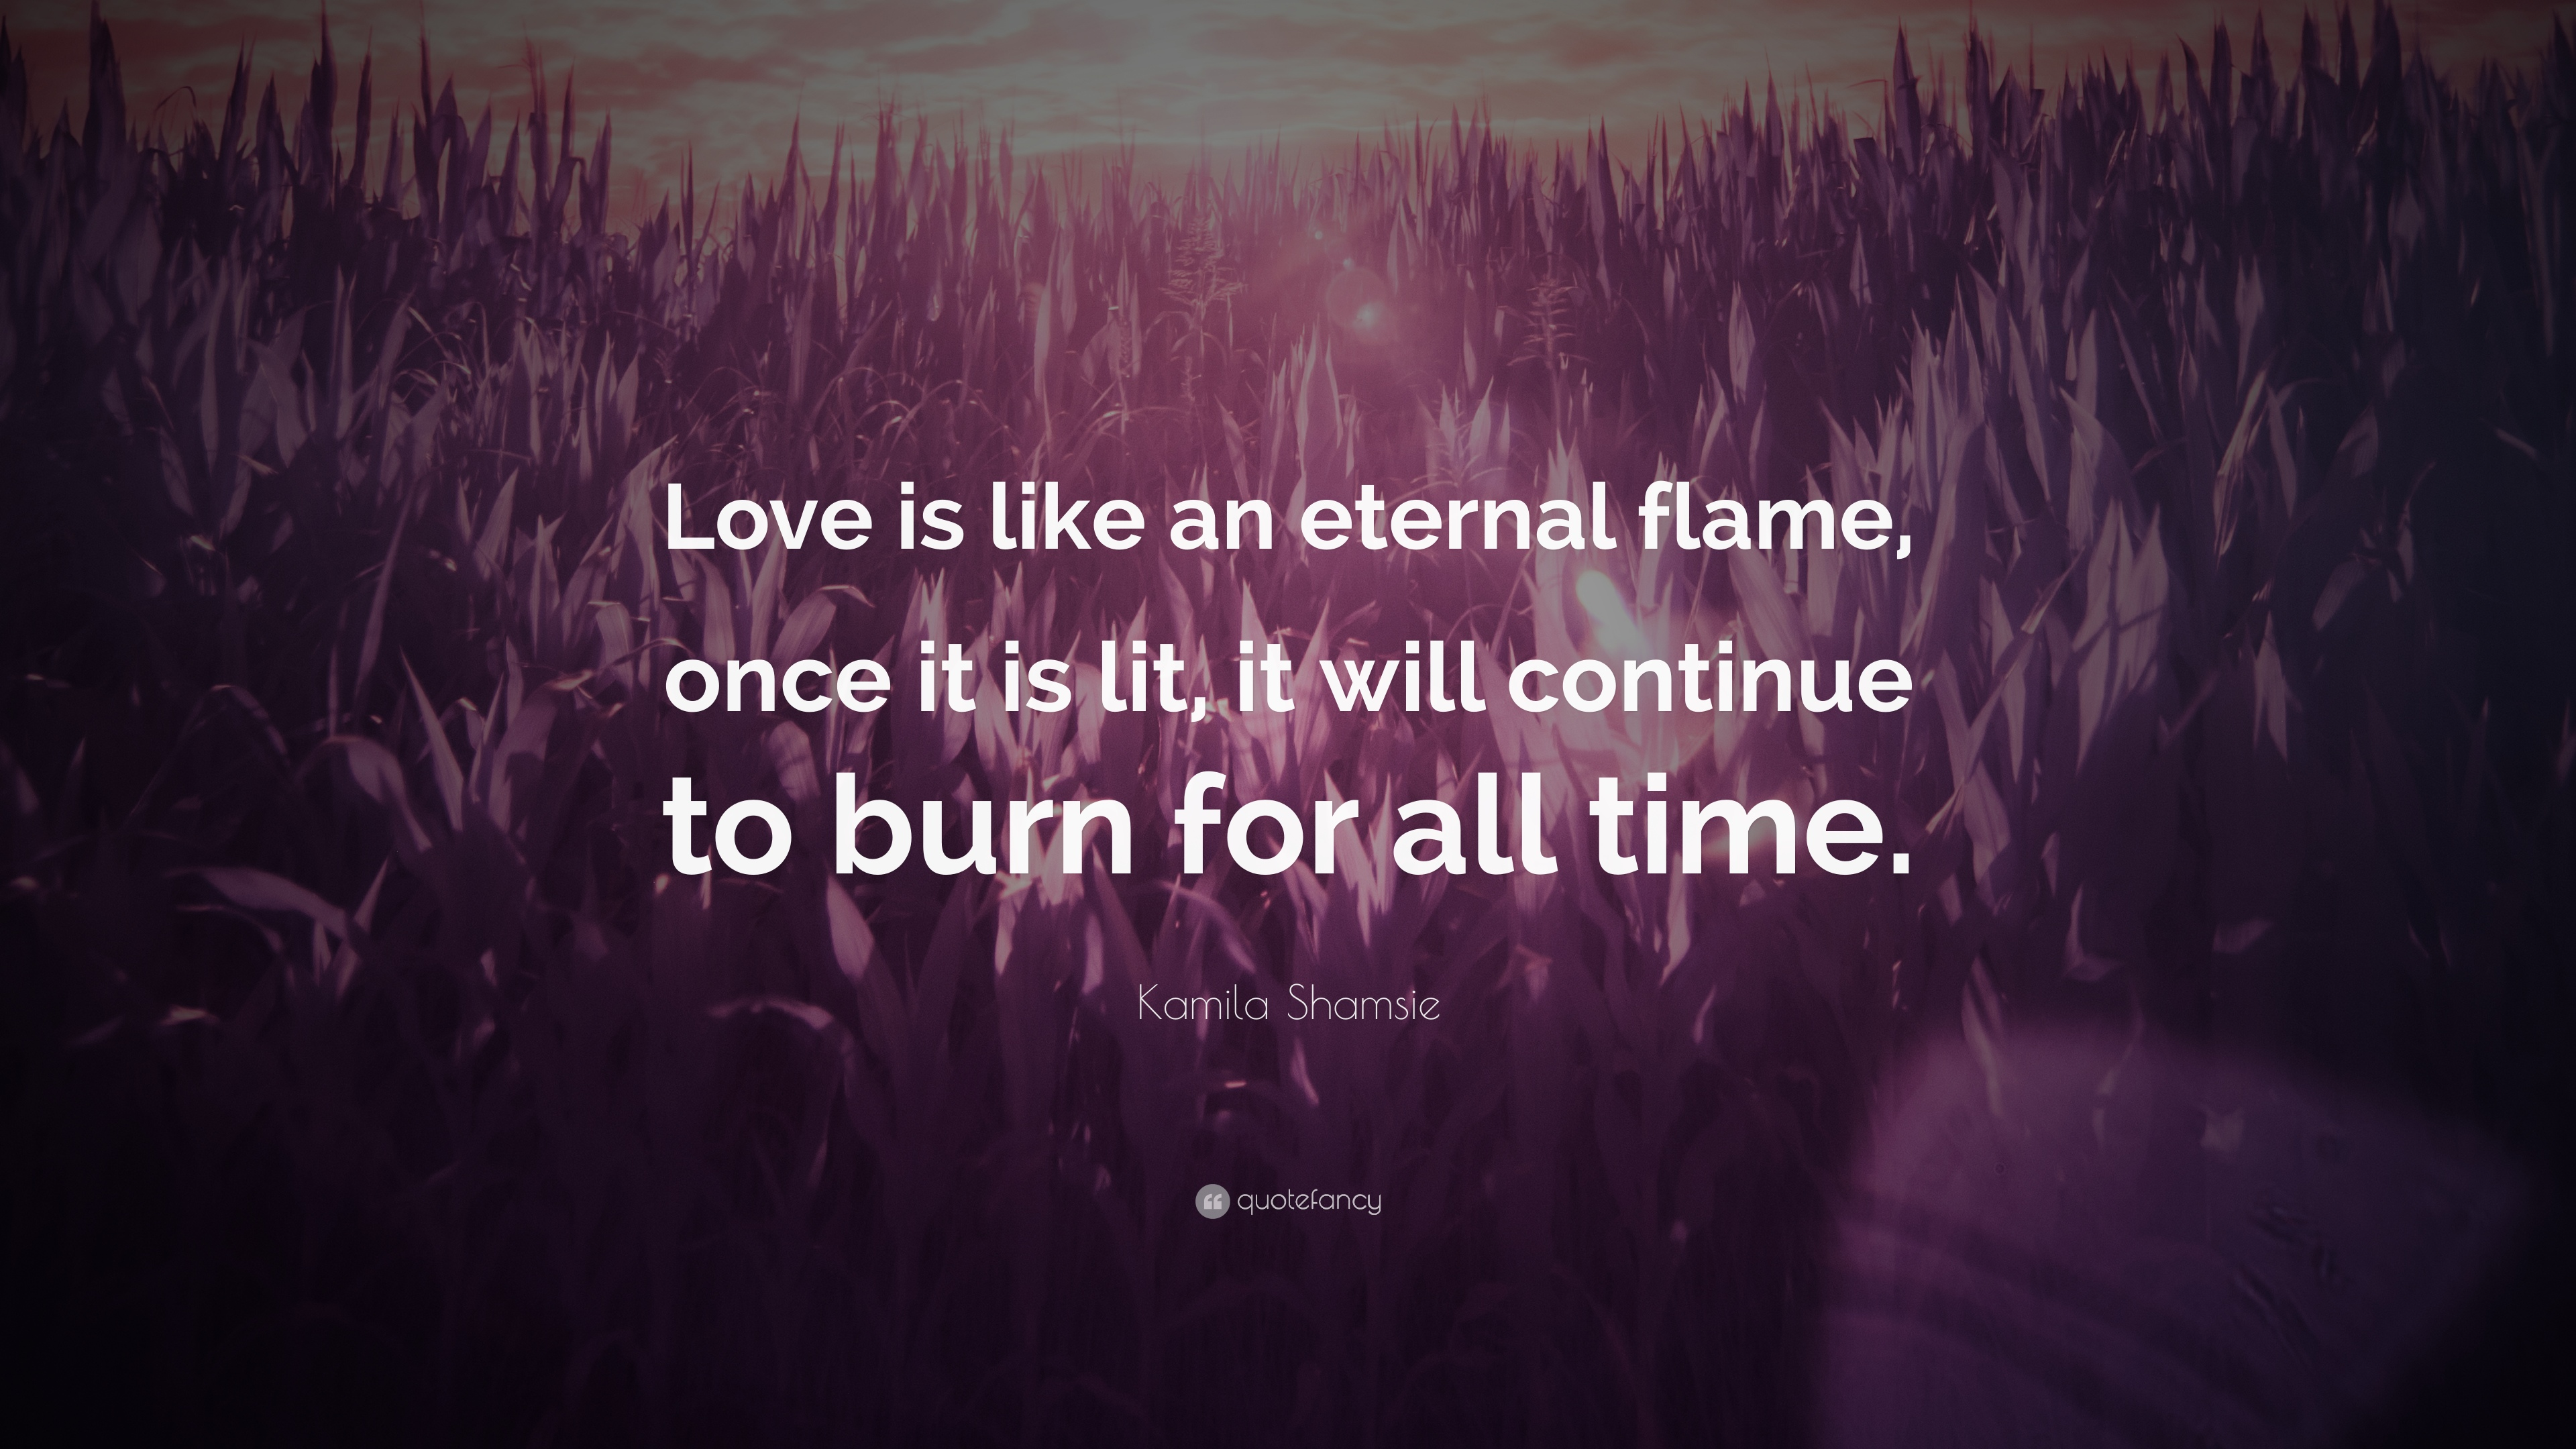 Kamila Shamsie Quote: U201cLove Is Like An Eternal Flame, Once It Is Lit